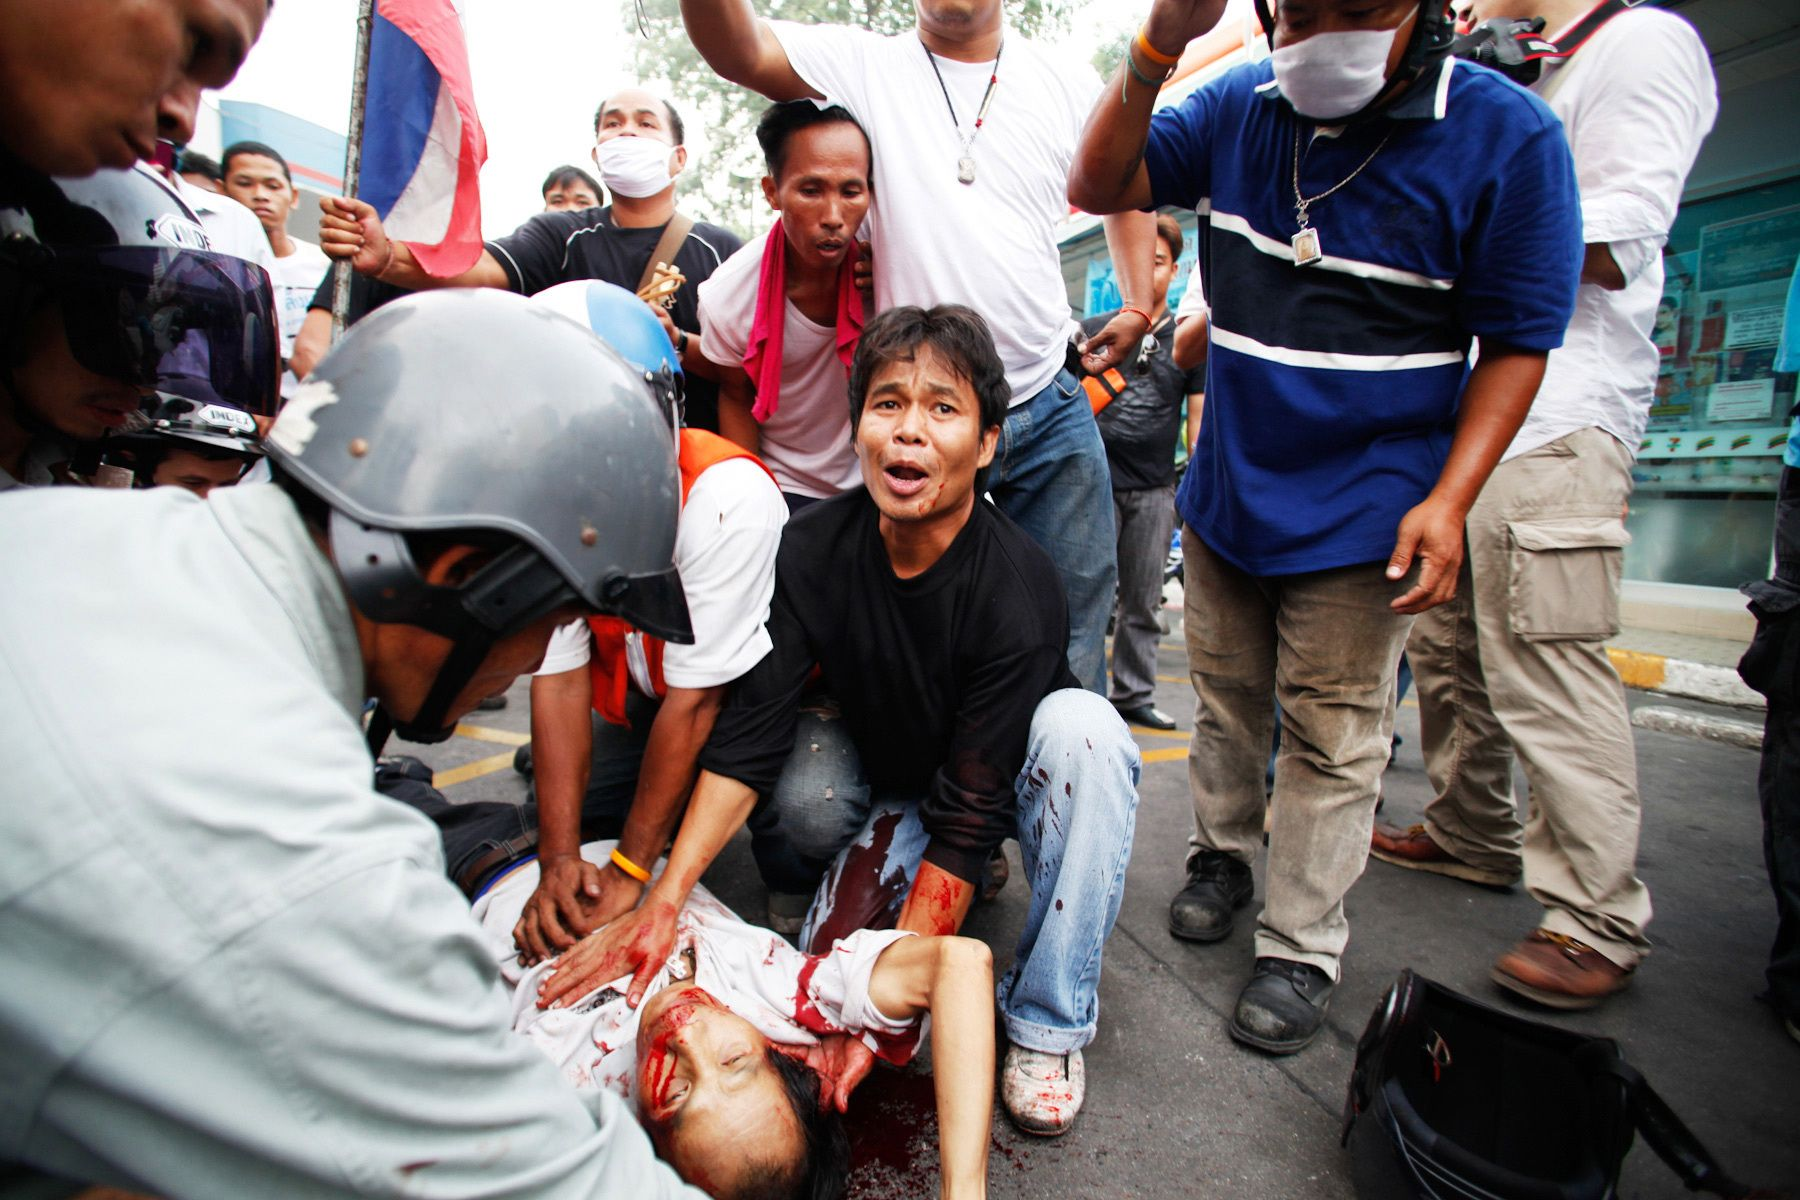 Members of The United Front for Democracy Against Dictatorship(UDD) aid a man shot by soldiers.